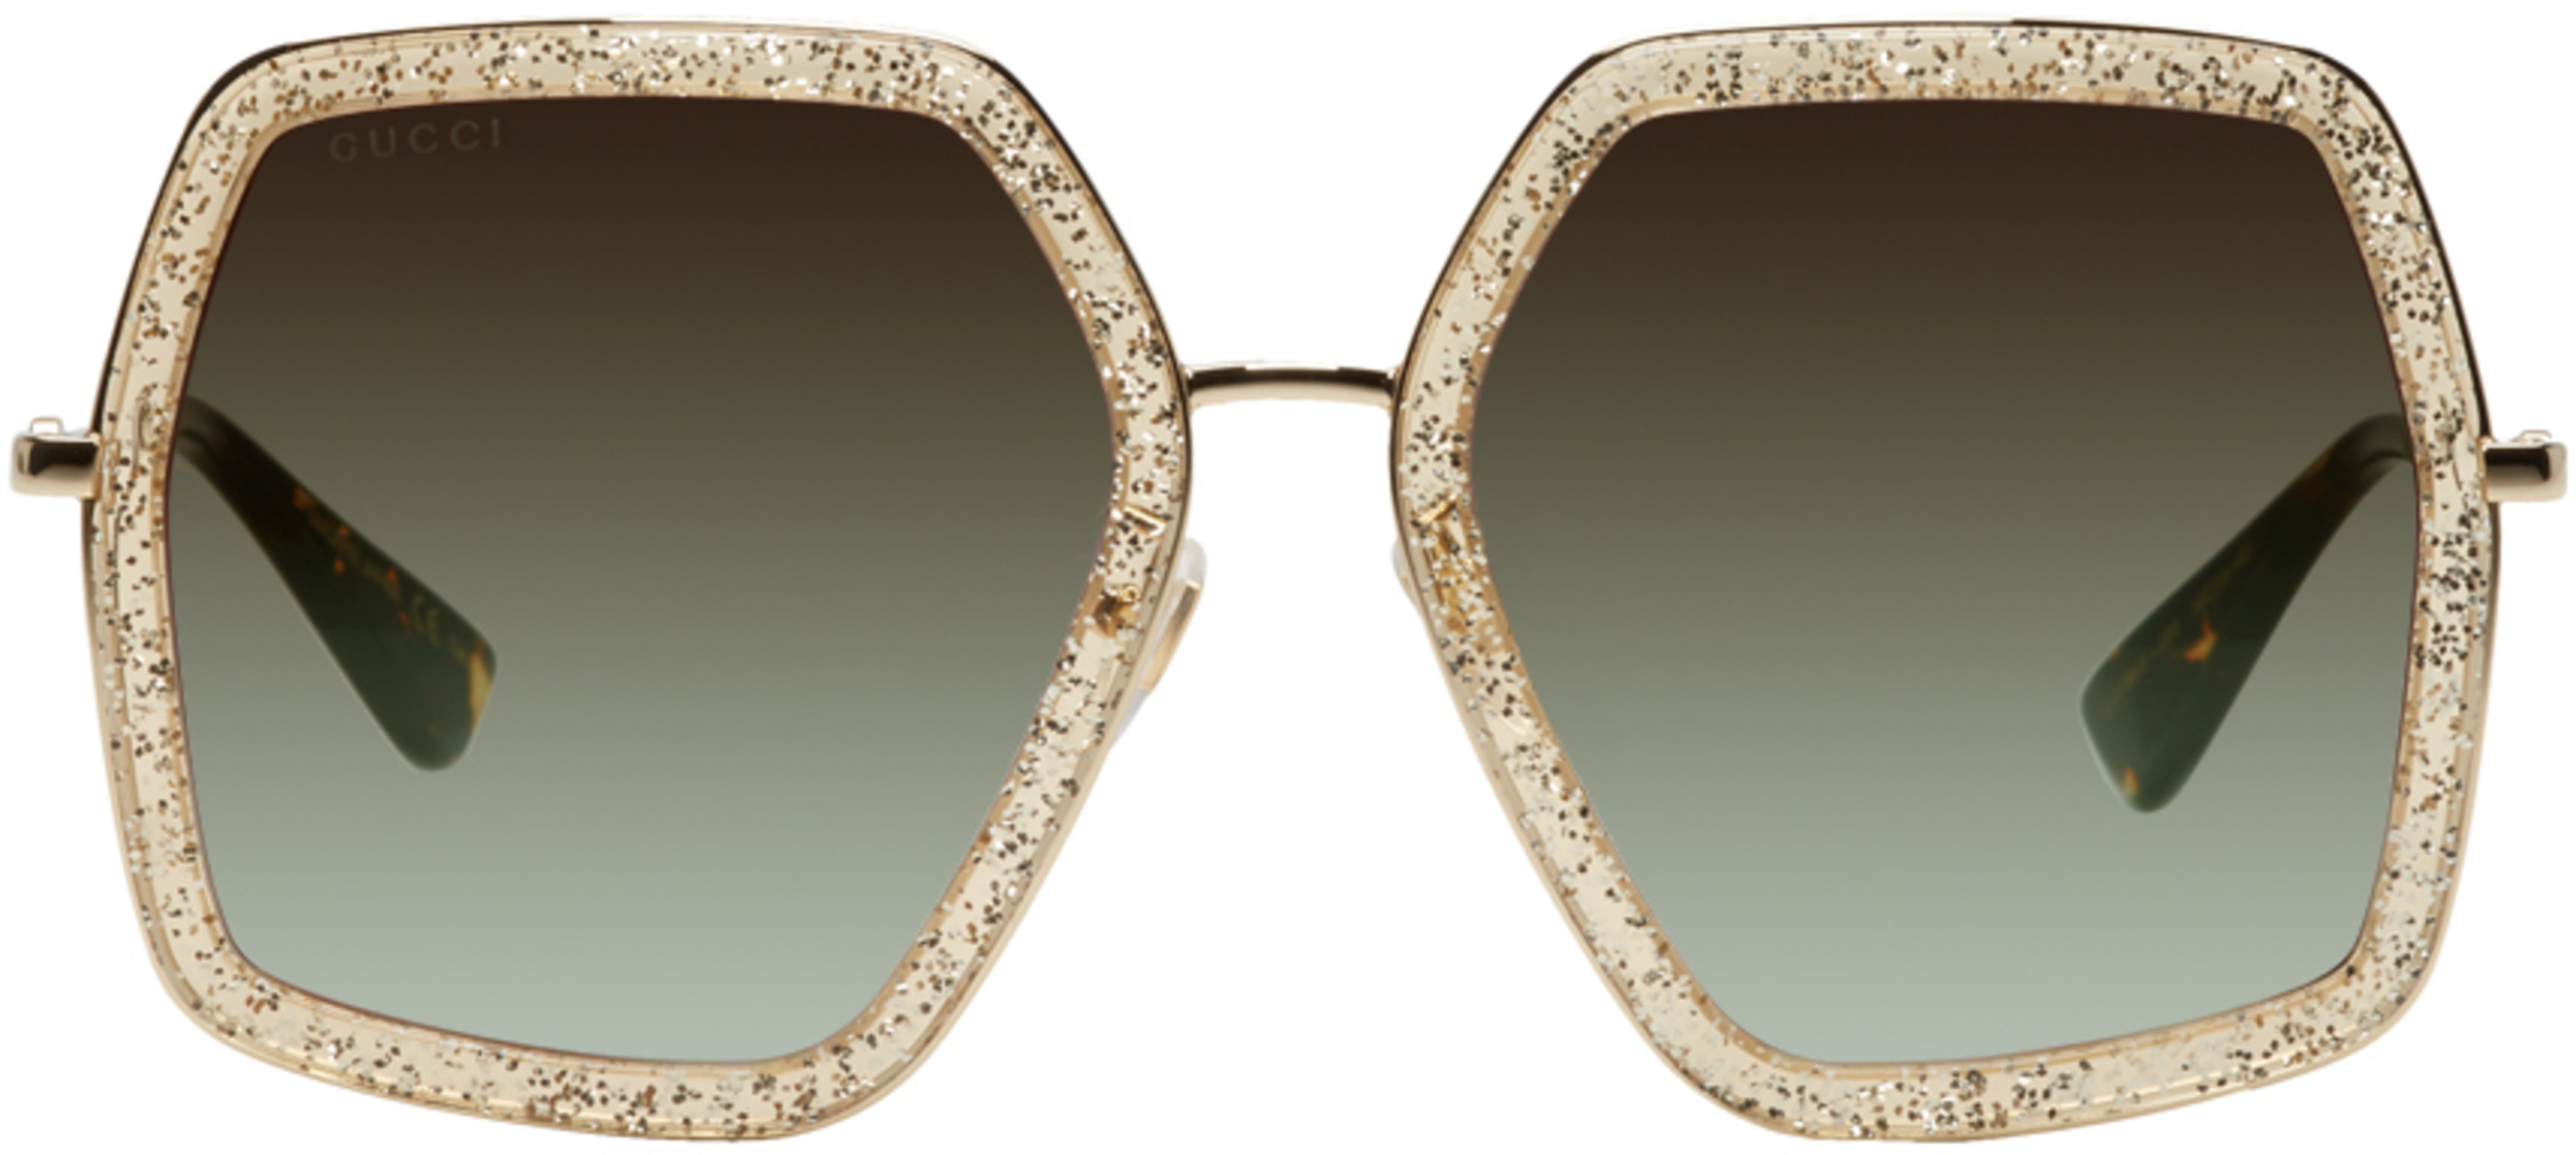 20c19f0c86 Gucci sunglasses for Women